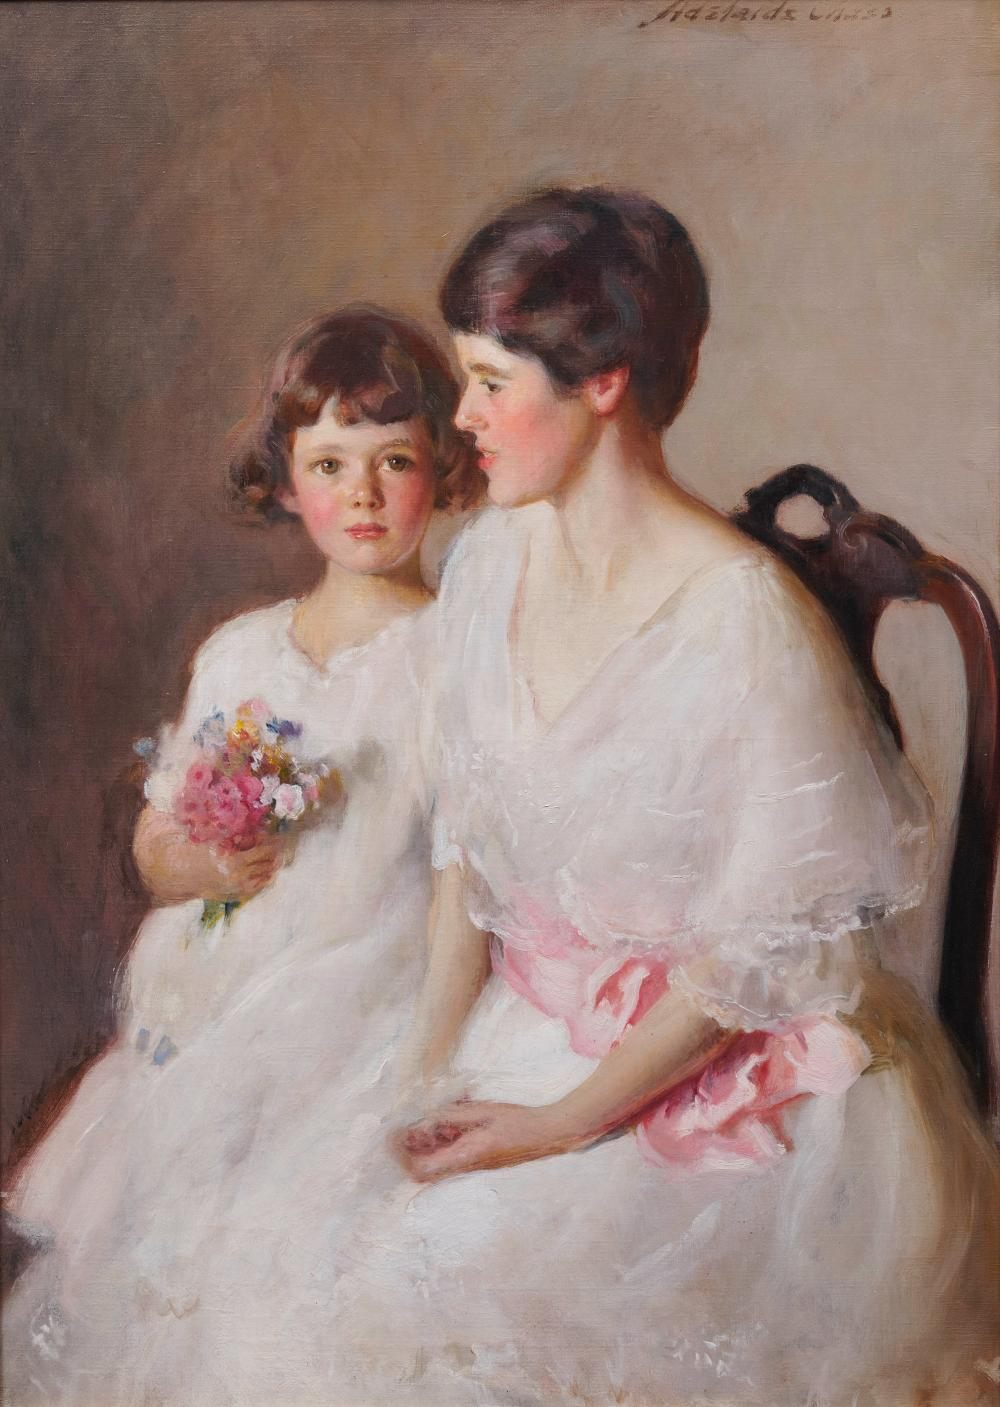 ADELAIDE COLE CHASE, (American, 1868-1944), The Two Alices, oil on canvas, 50 x 36 in., frame: 59 x 45 in.